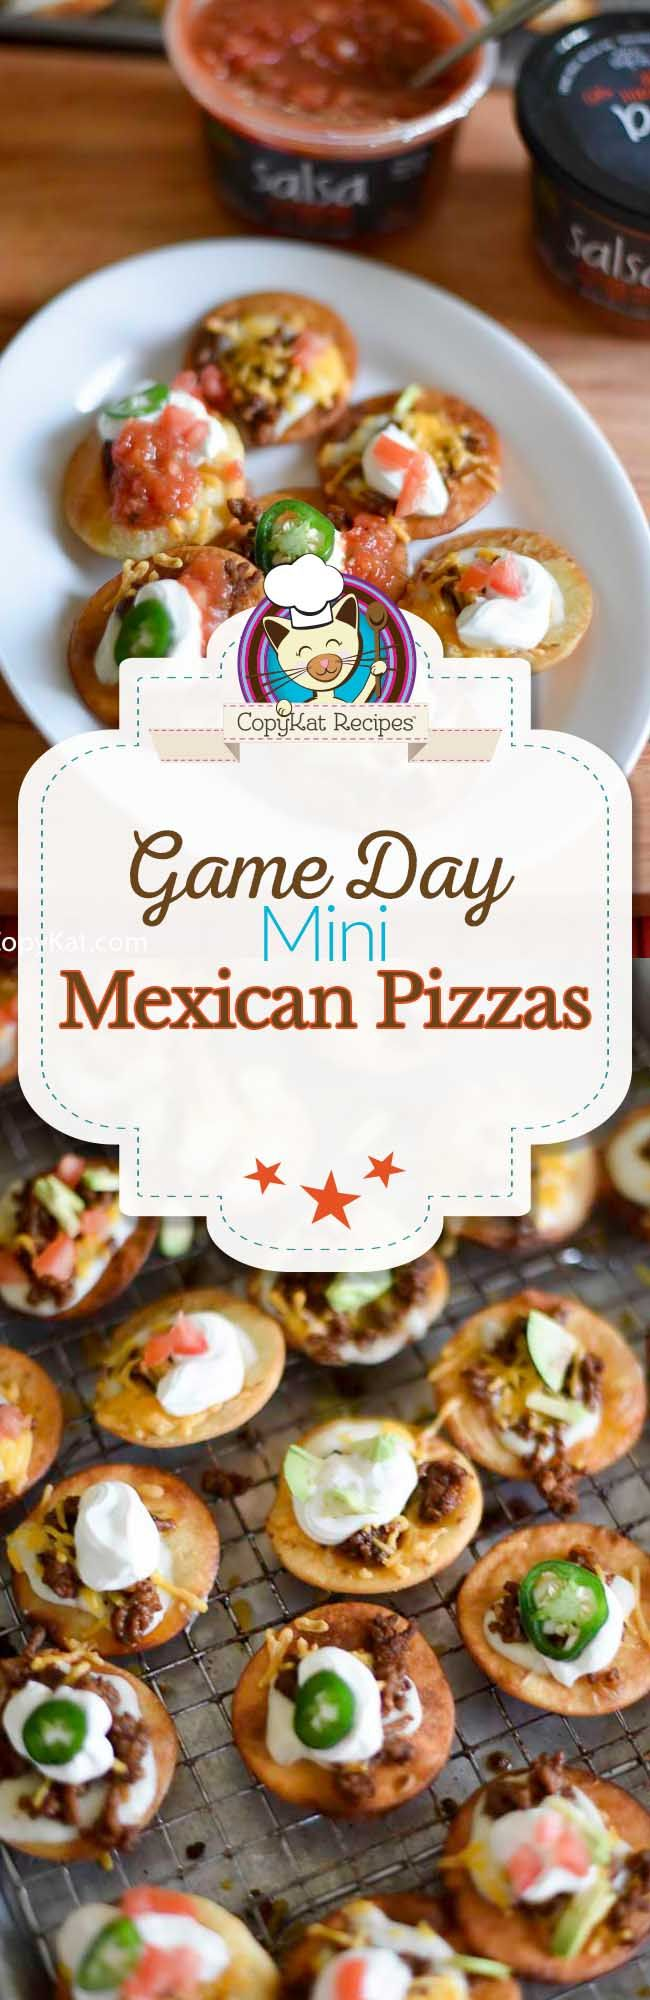 These Game Day Mini Mexican Pizzas are just the thing for your Big Game! Crispy mini Mexican pizzas topped your favorite ingredients. This is a recipe for your party!